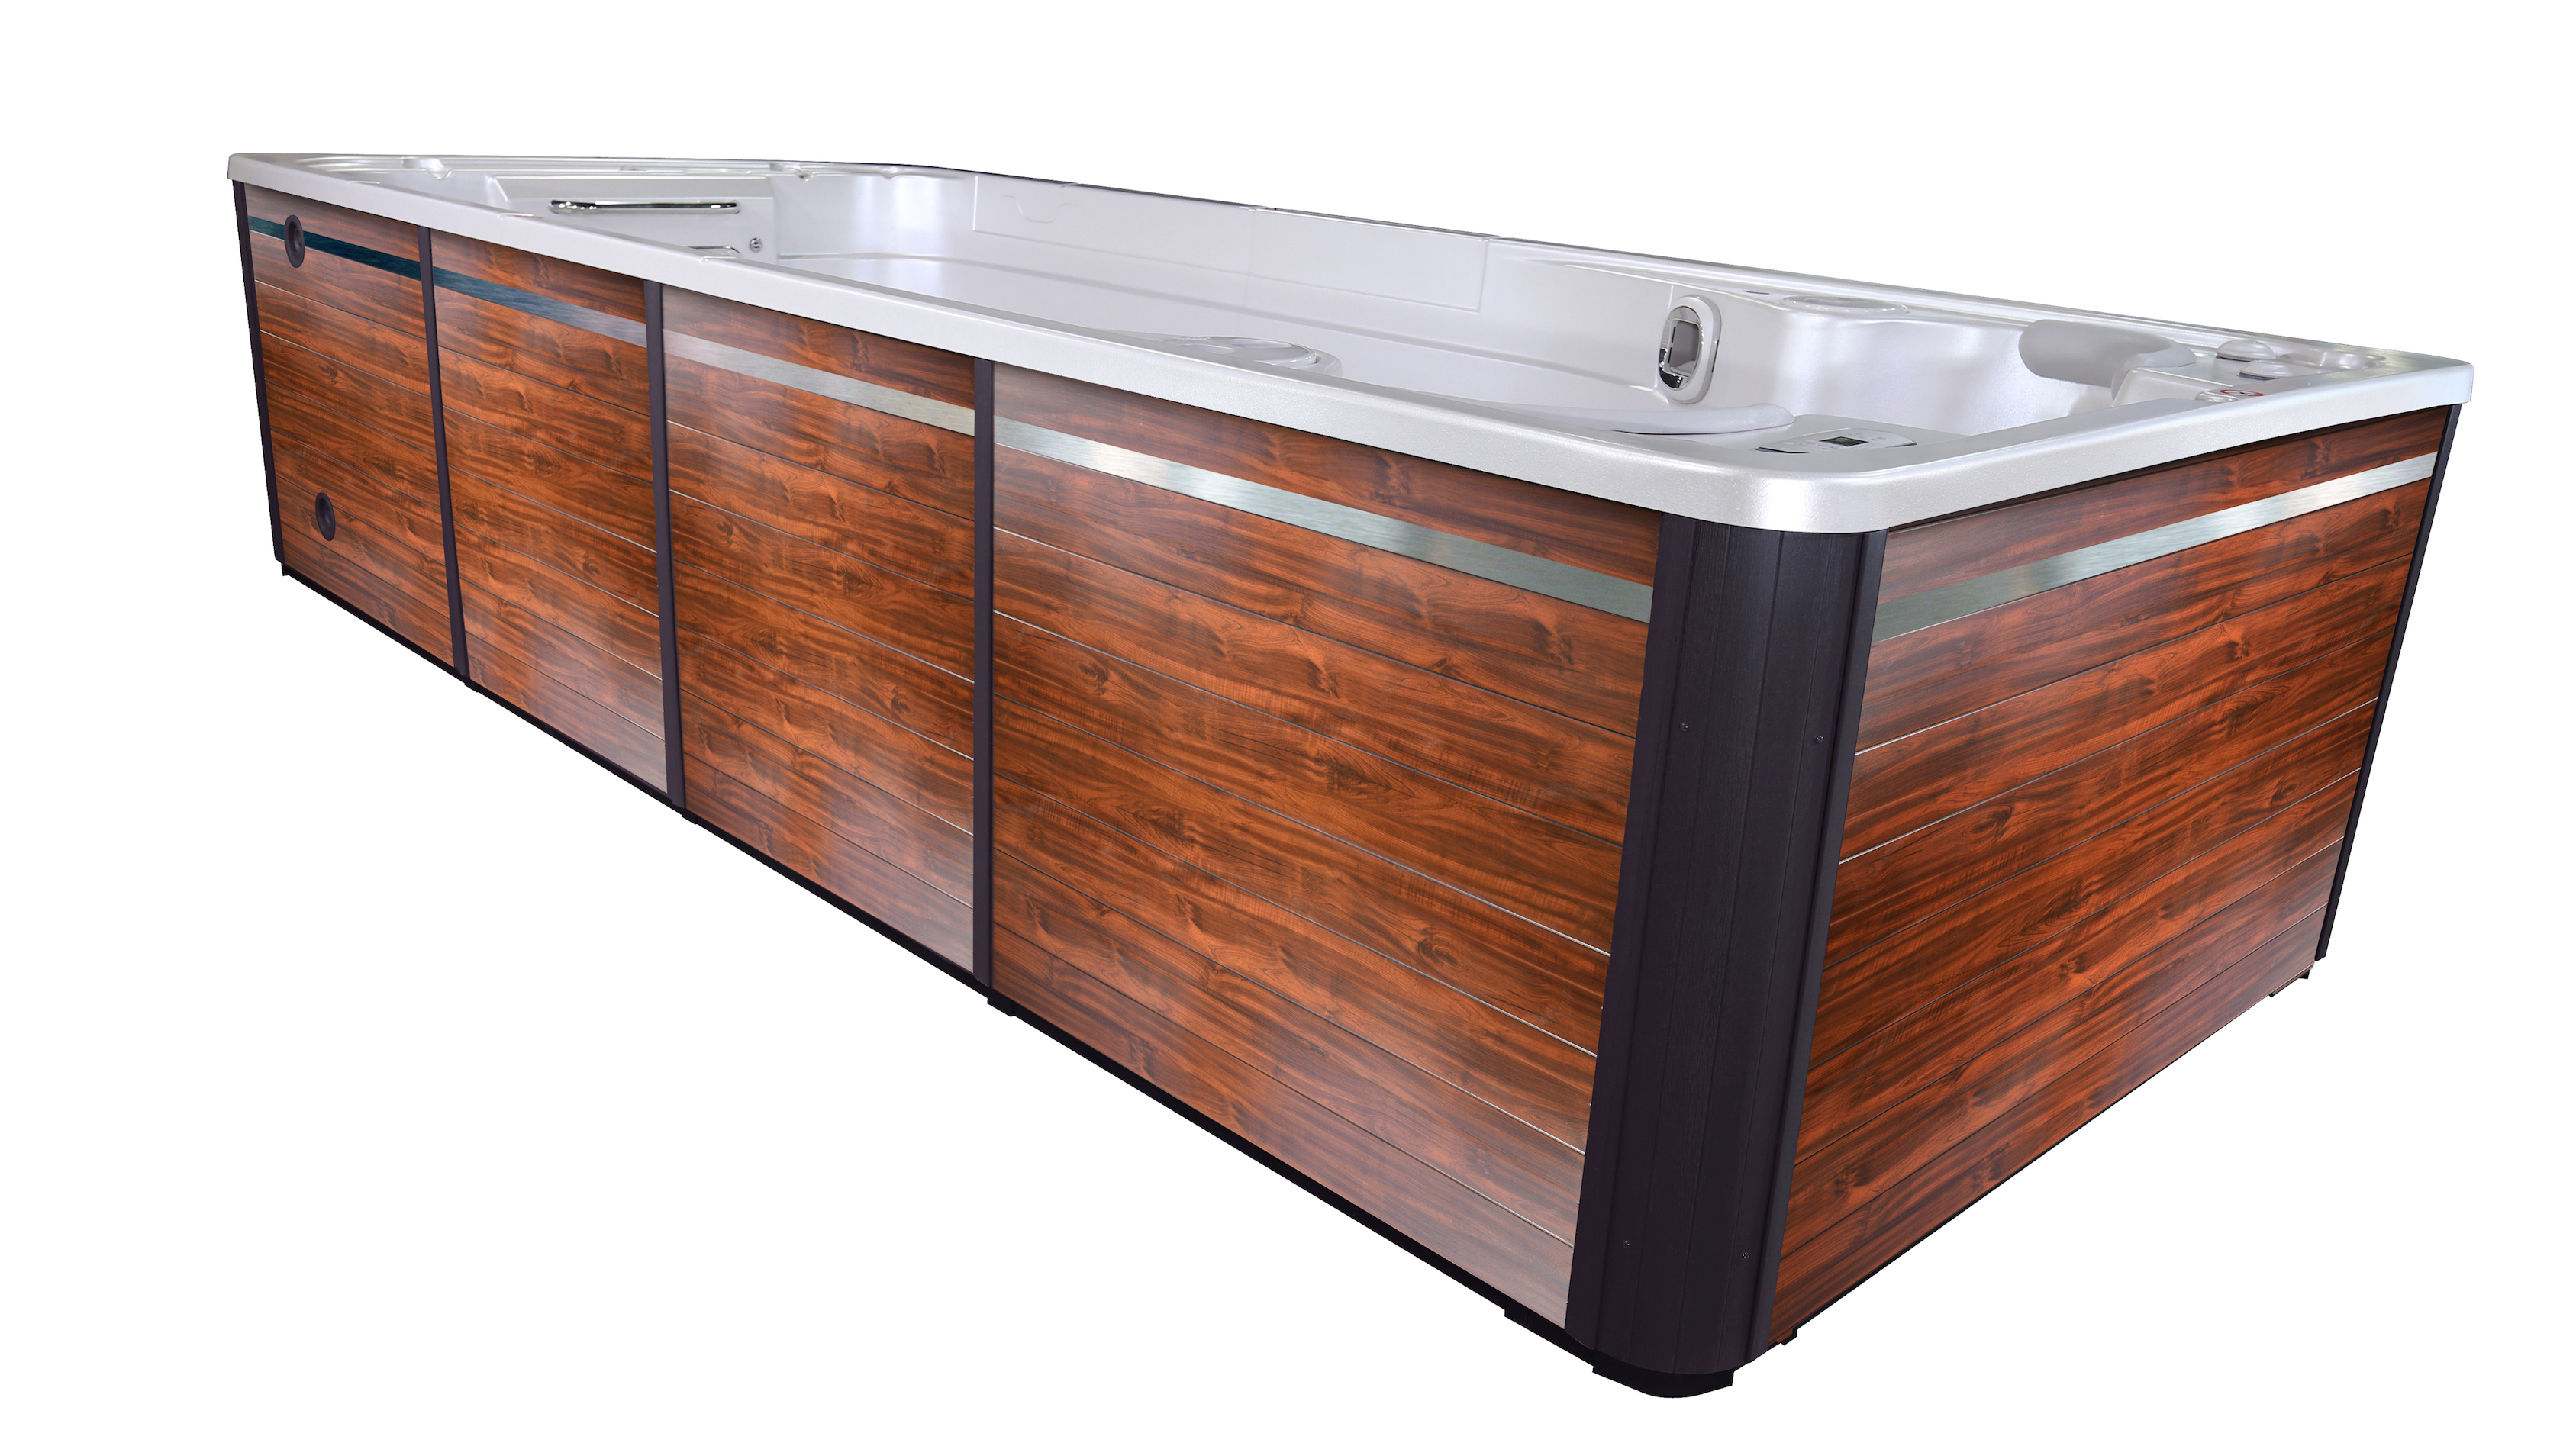 black-cherry-stainlesssteel-stripe-midni